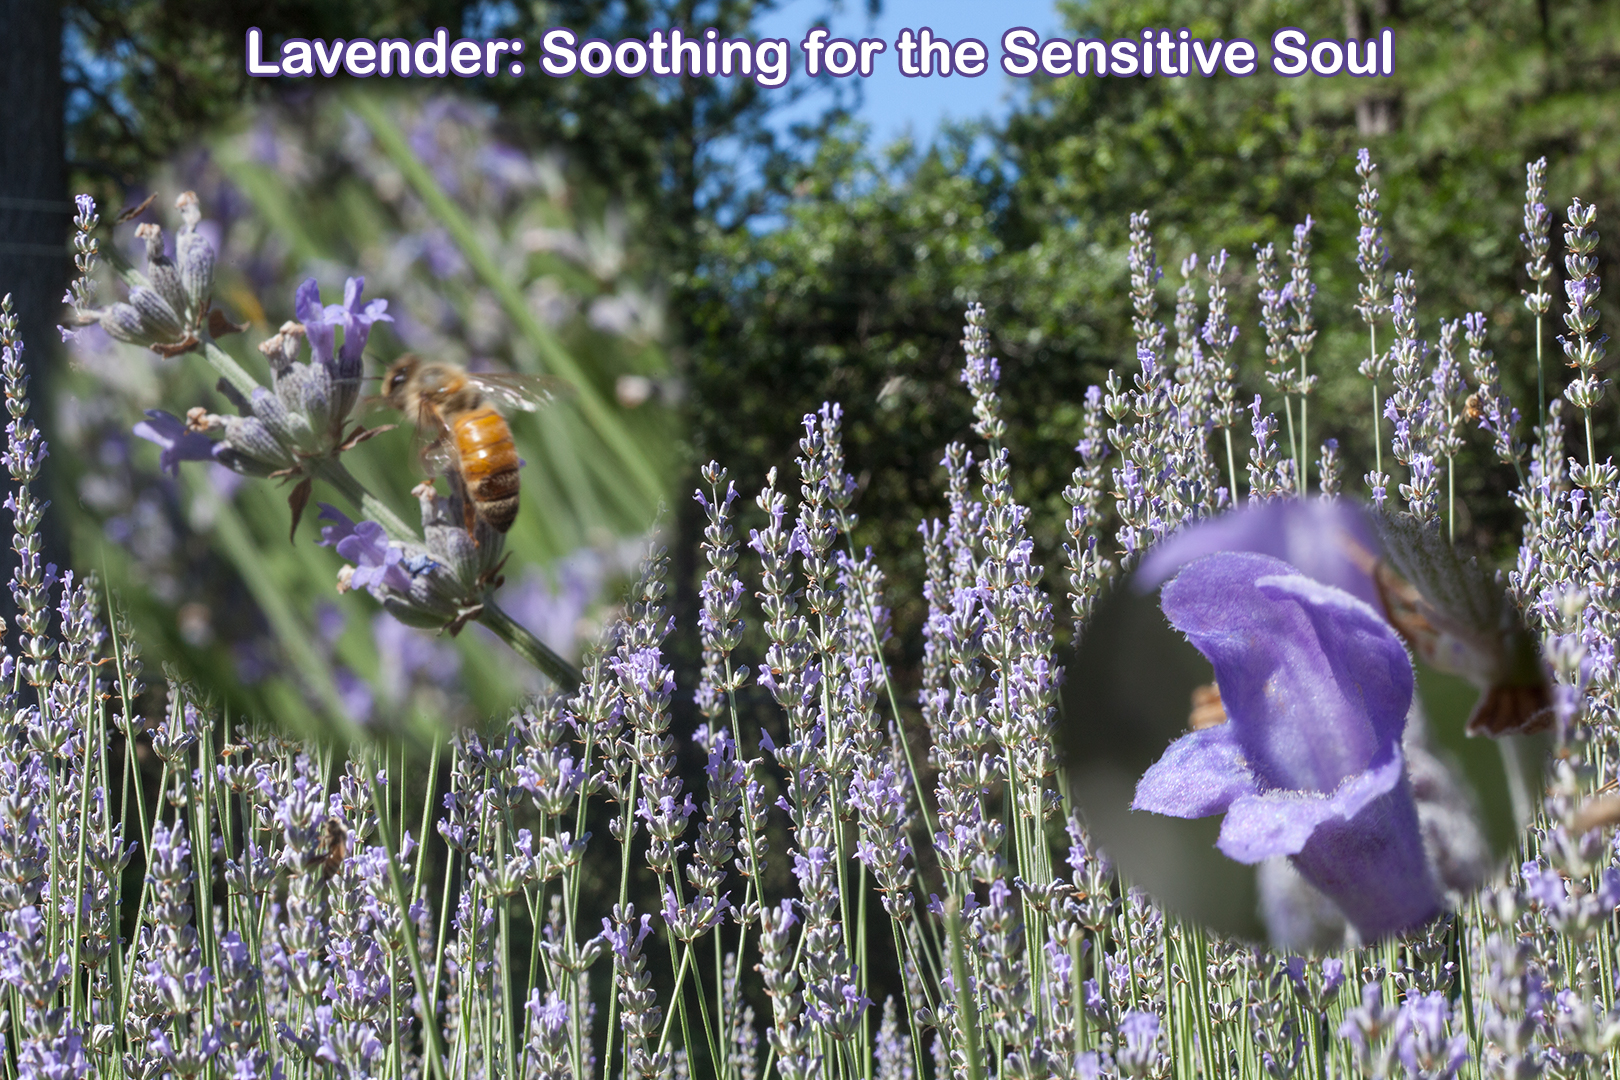 Lavender: a calming and soothing energy for the sensitive soul